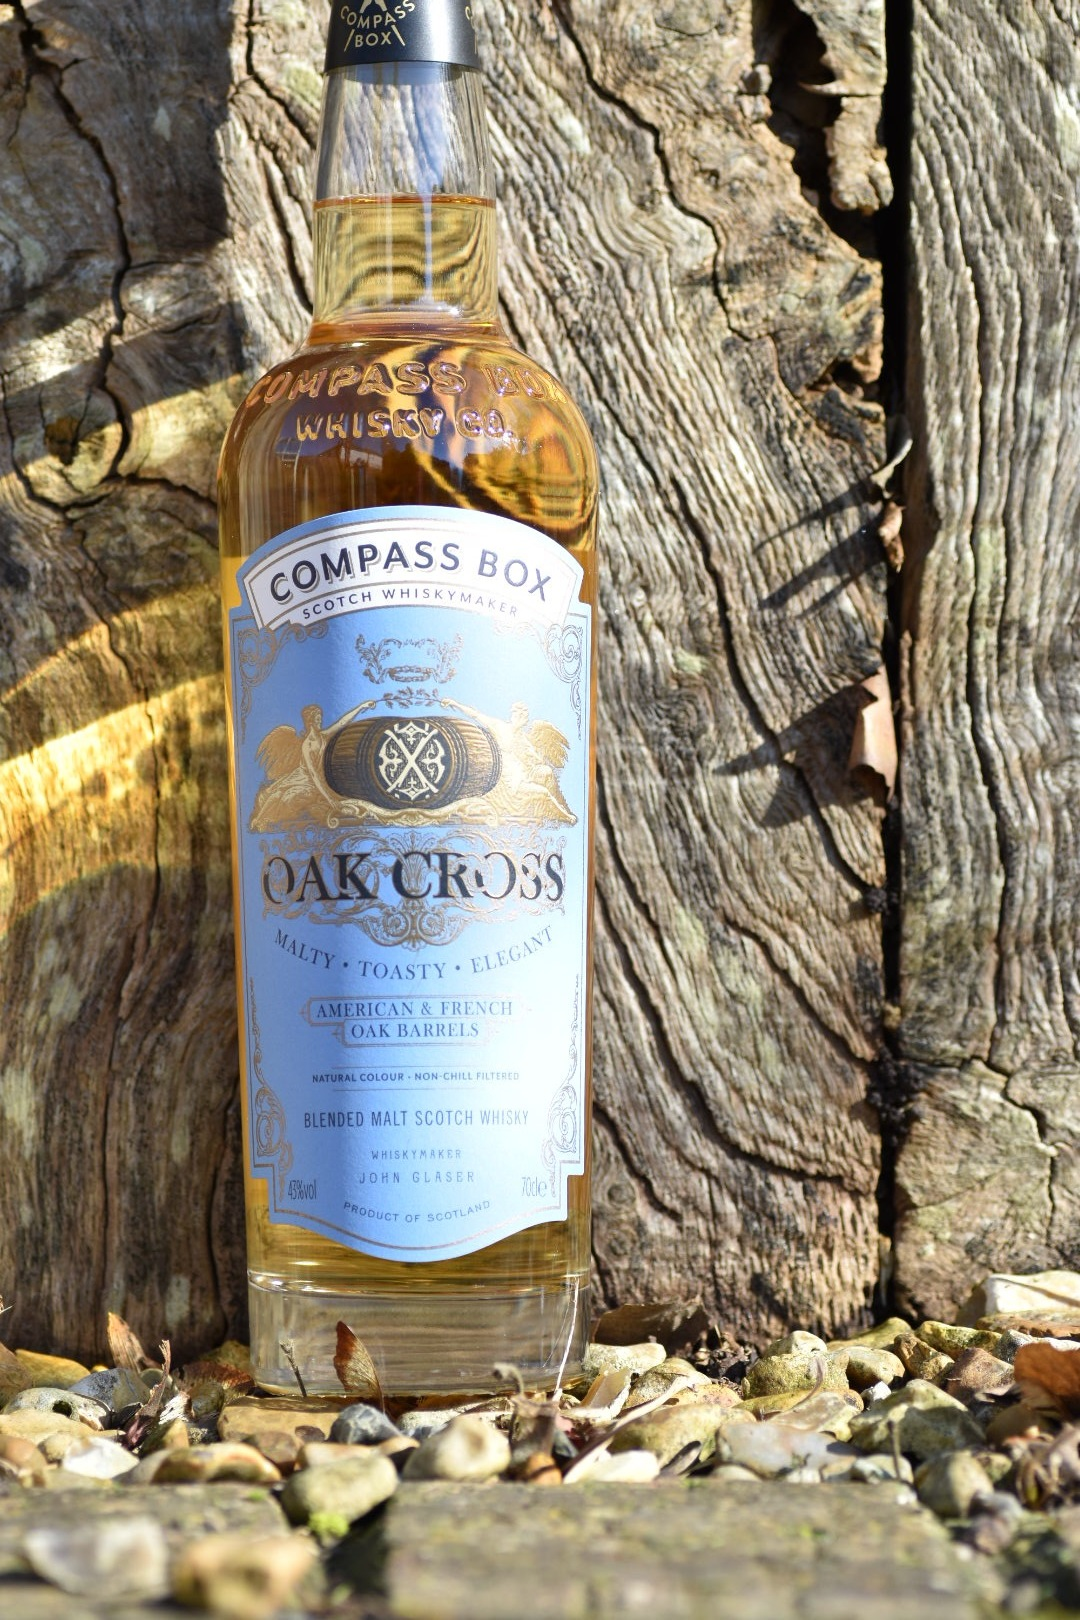 Oak Cross is one of my all-time favourite whiskies that is not a special edition